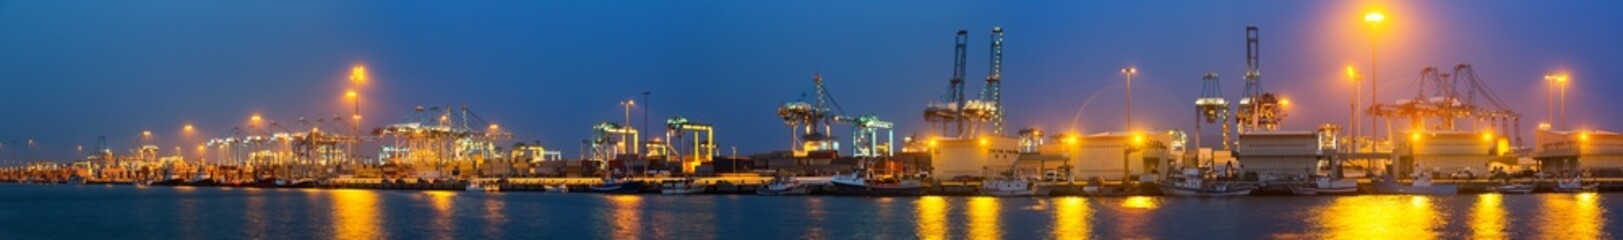 Evening view of  Port with cranes and containers